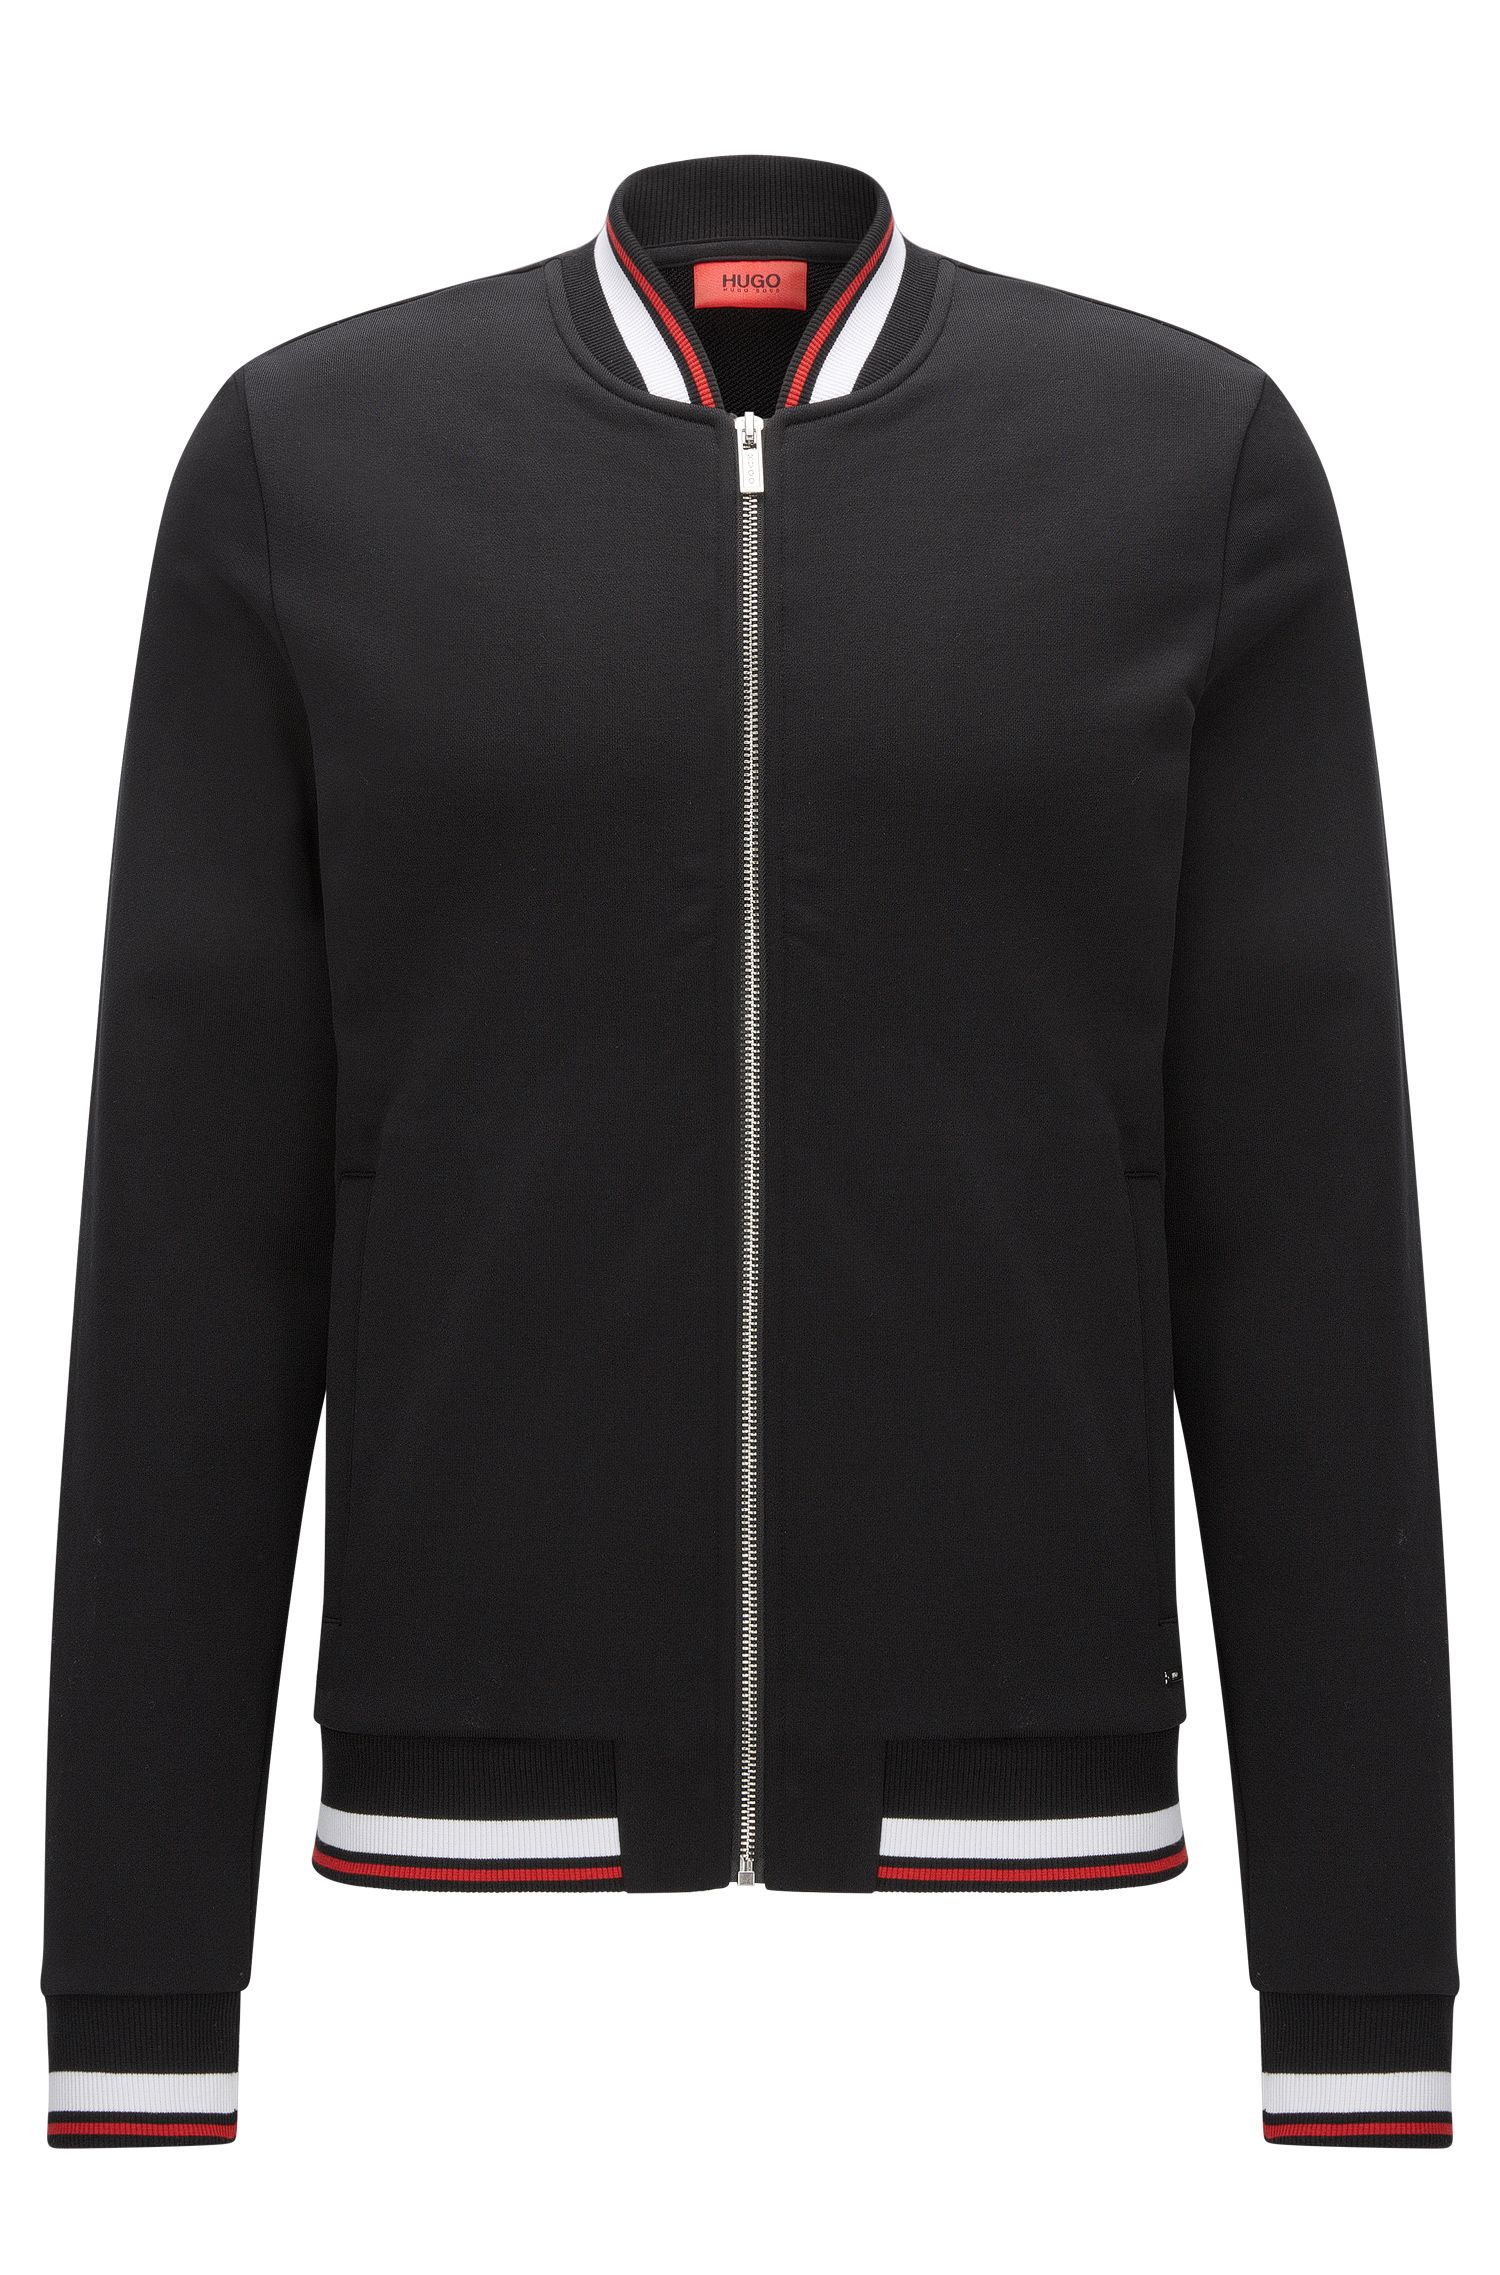 Relaxed-fit zip-through jacket in French terry